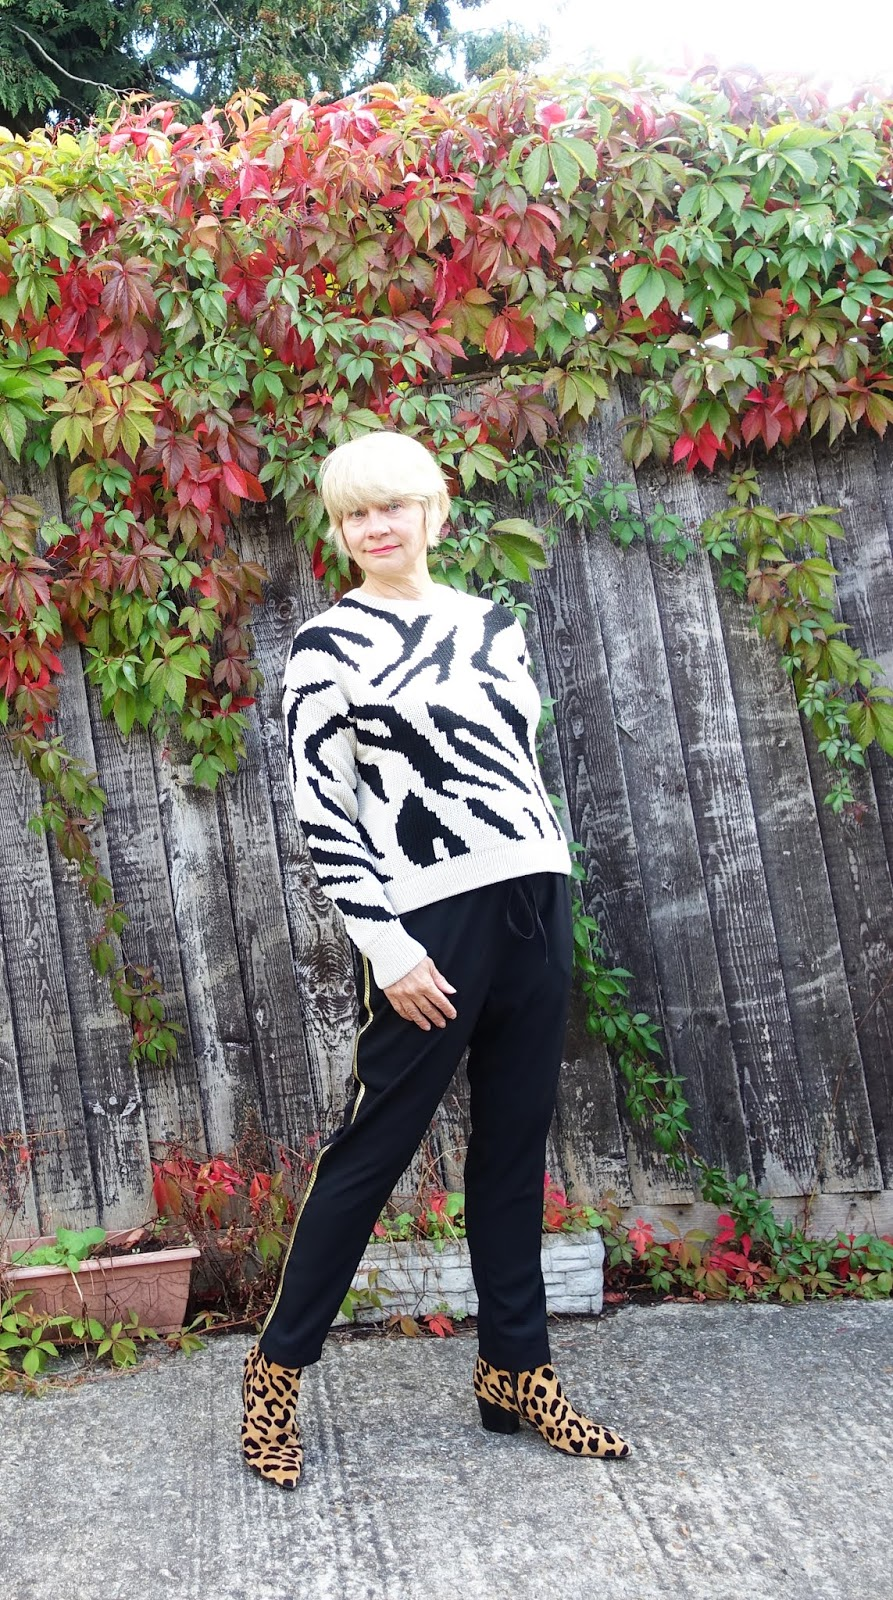 Style blog for the over-45s, Is This Mutton, shows how to mix your animal prints